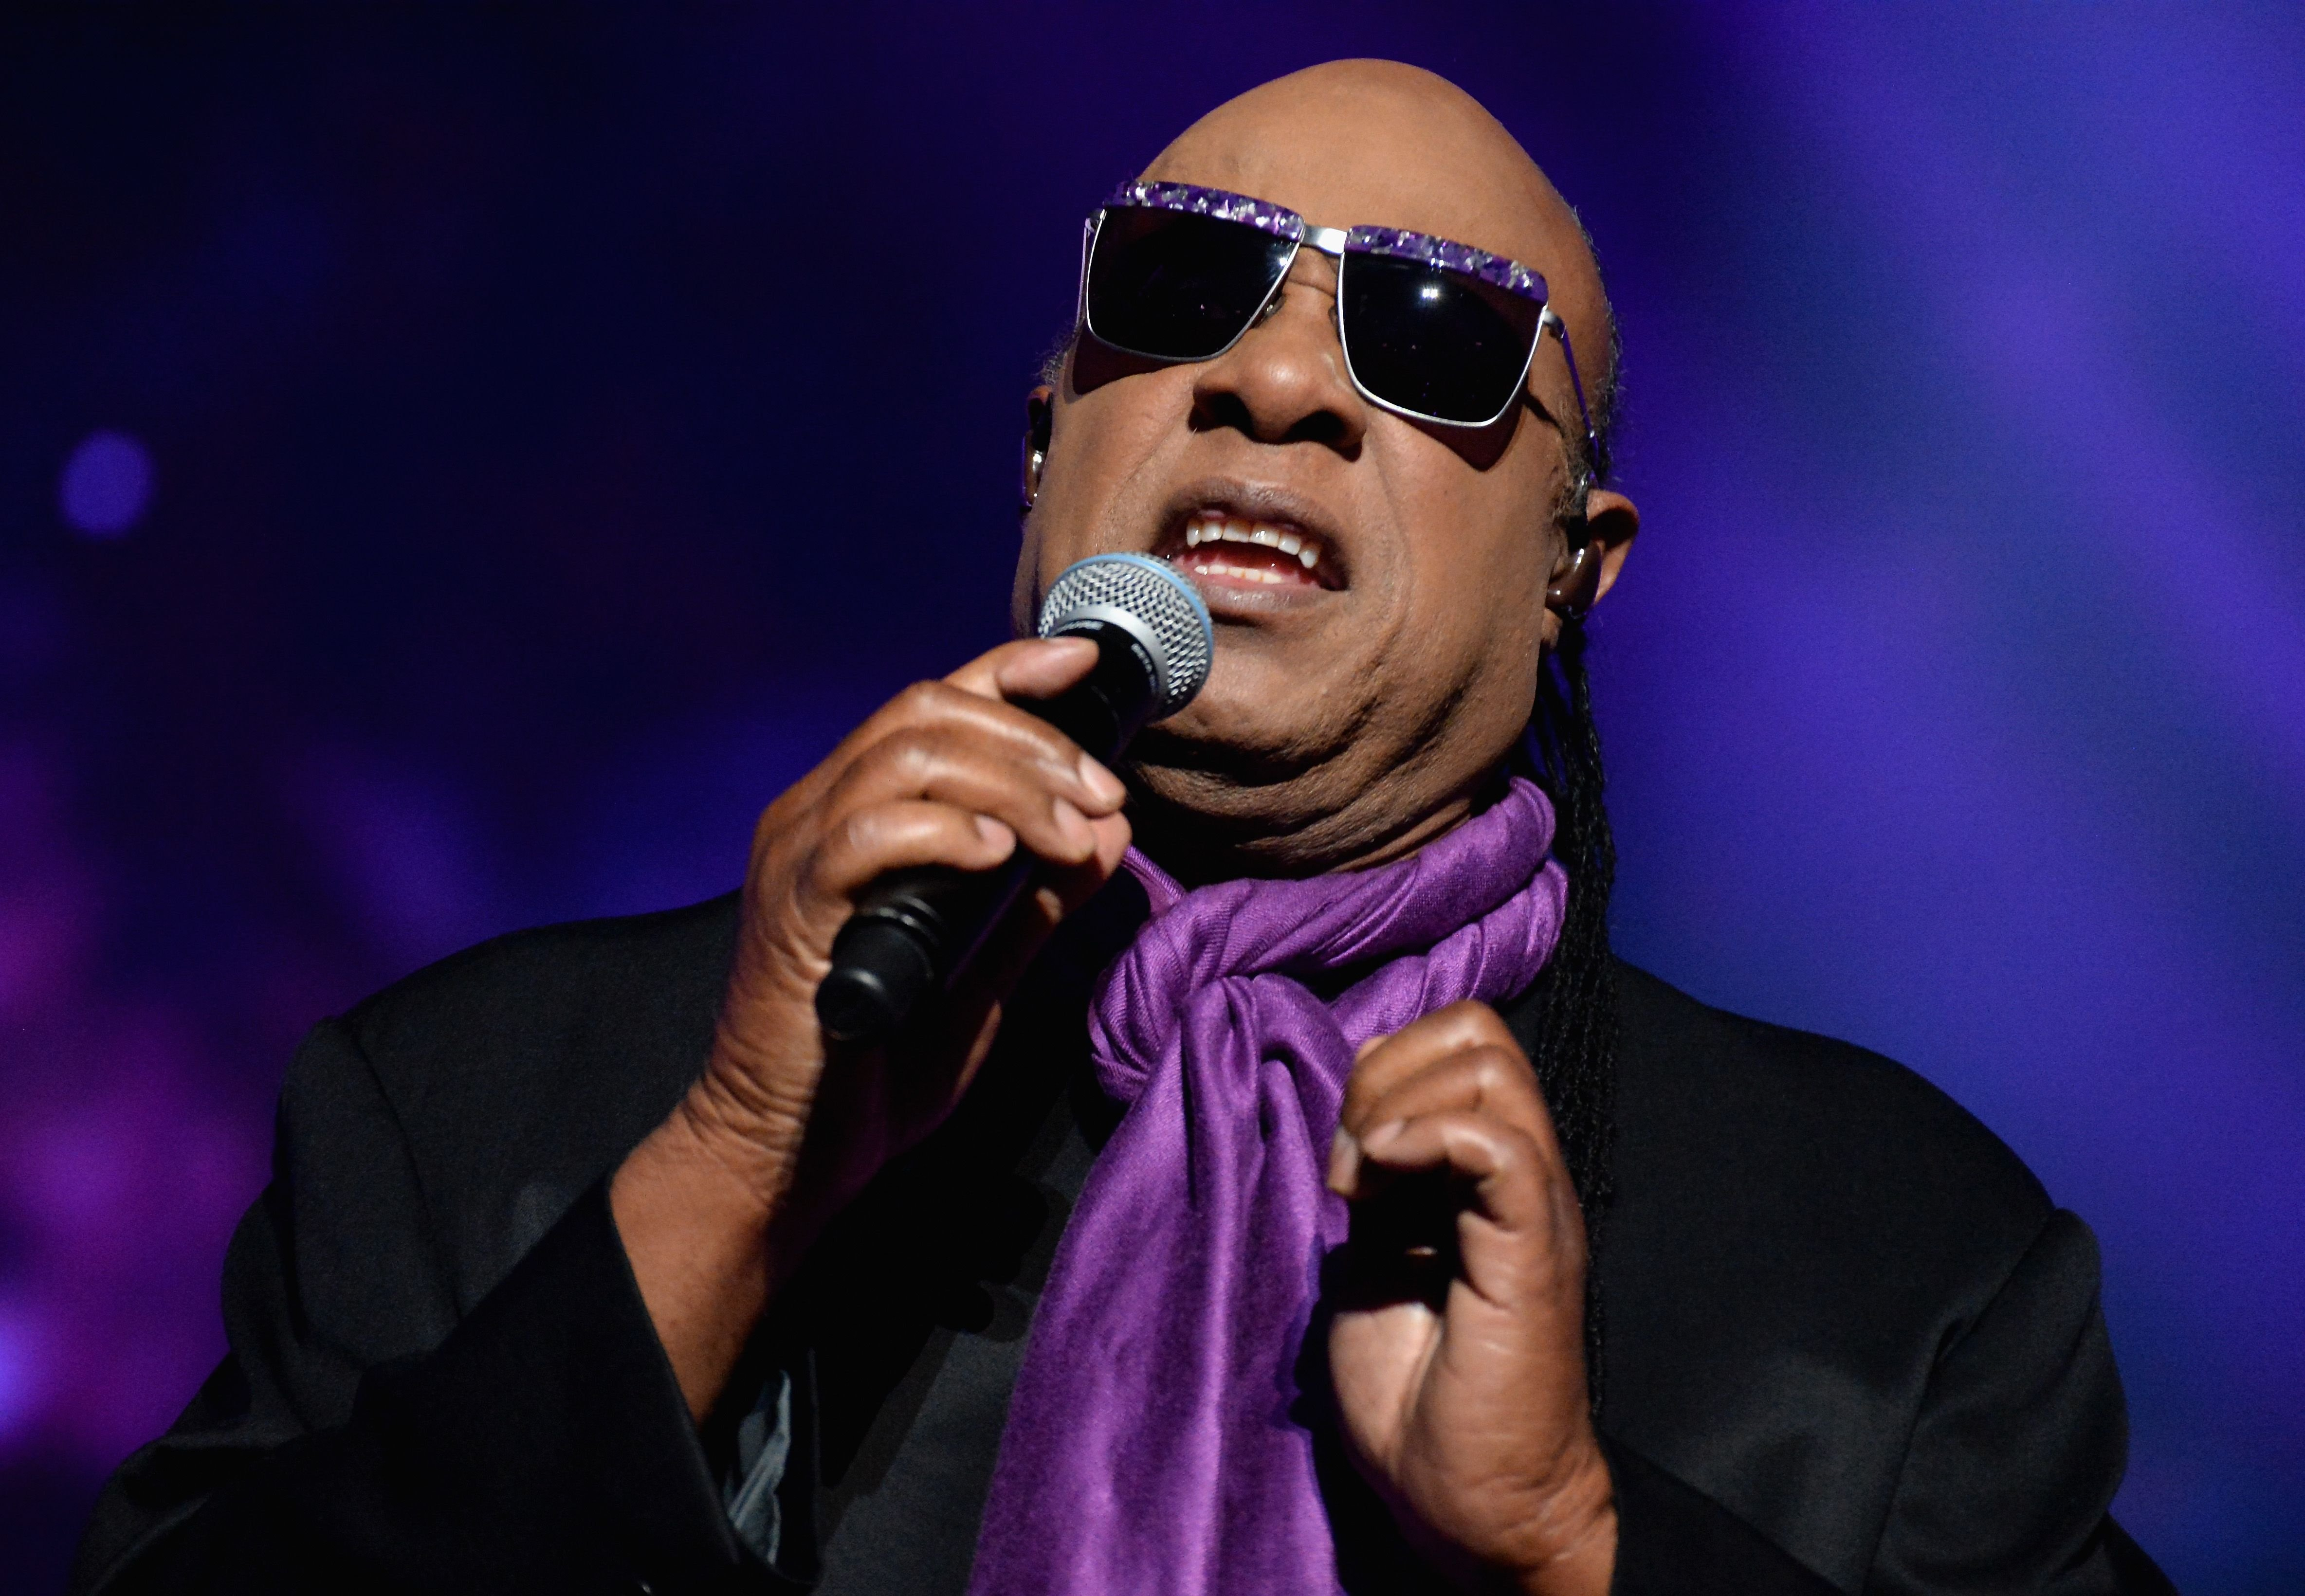 Stevie Wonder sings onstage during the 2016 Billboard Music Awards at T-Mobile Arena on May 22, 2016 in Las Vegas, Nevada. | Source: Getty Images